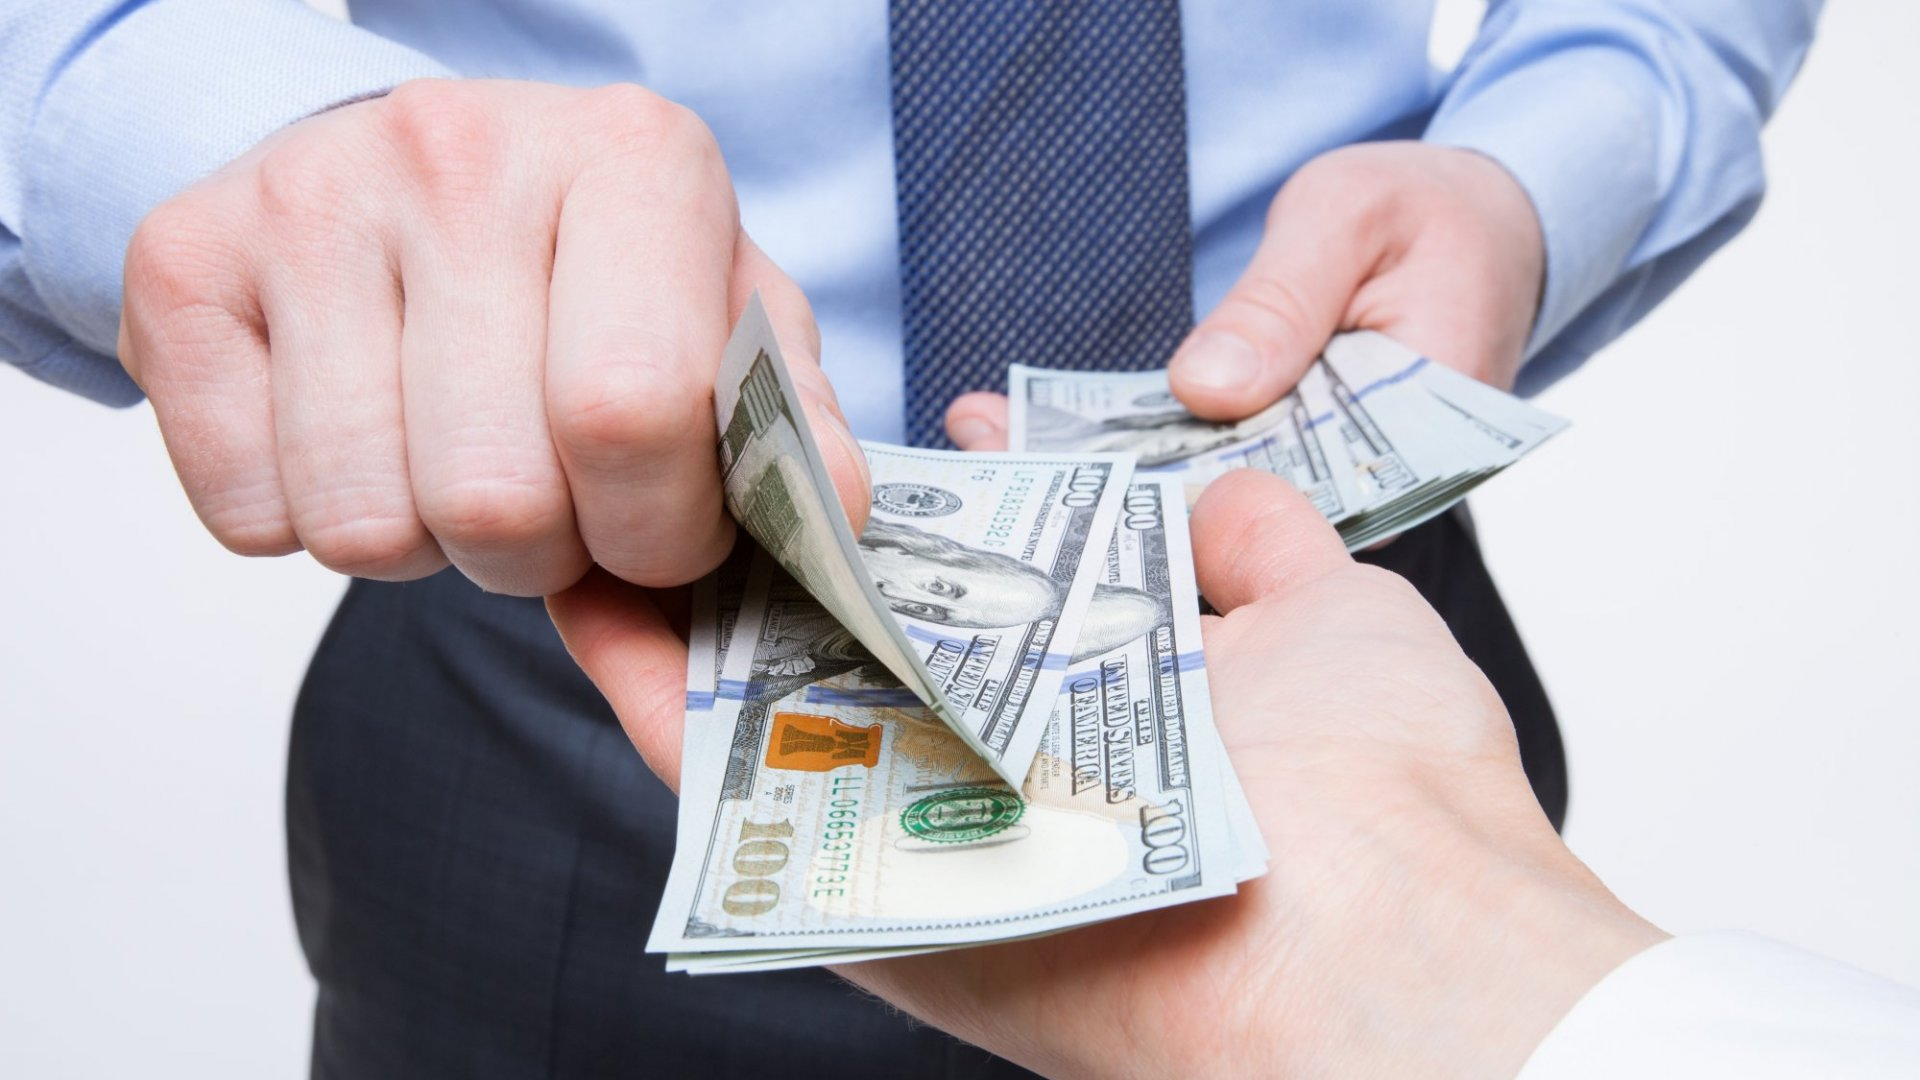 Need Cash Fast? 6 Ways to Make a Quick Buck